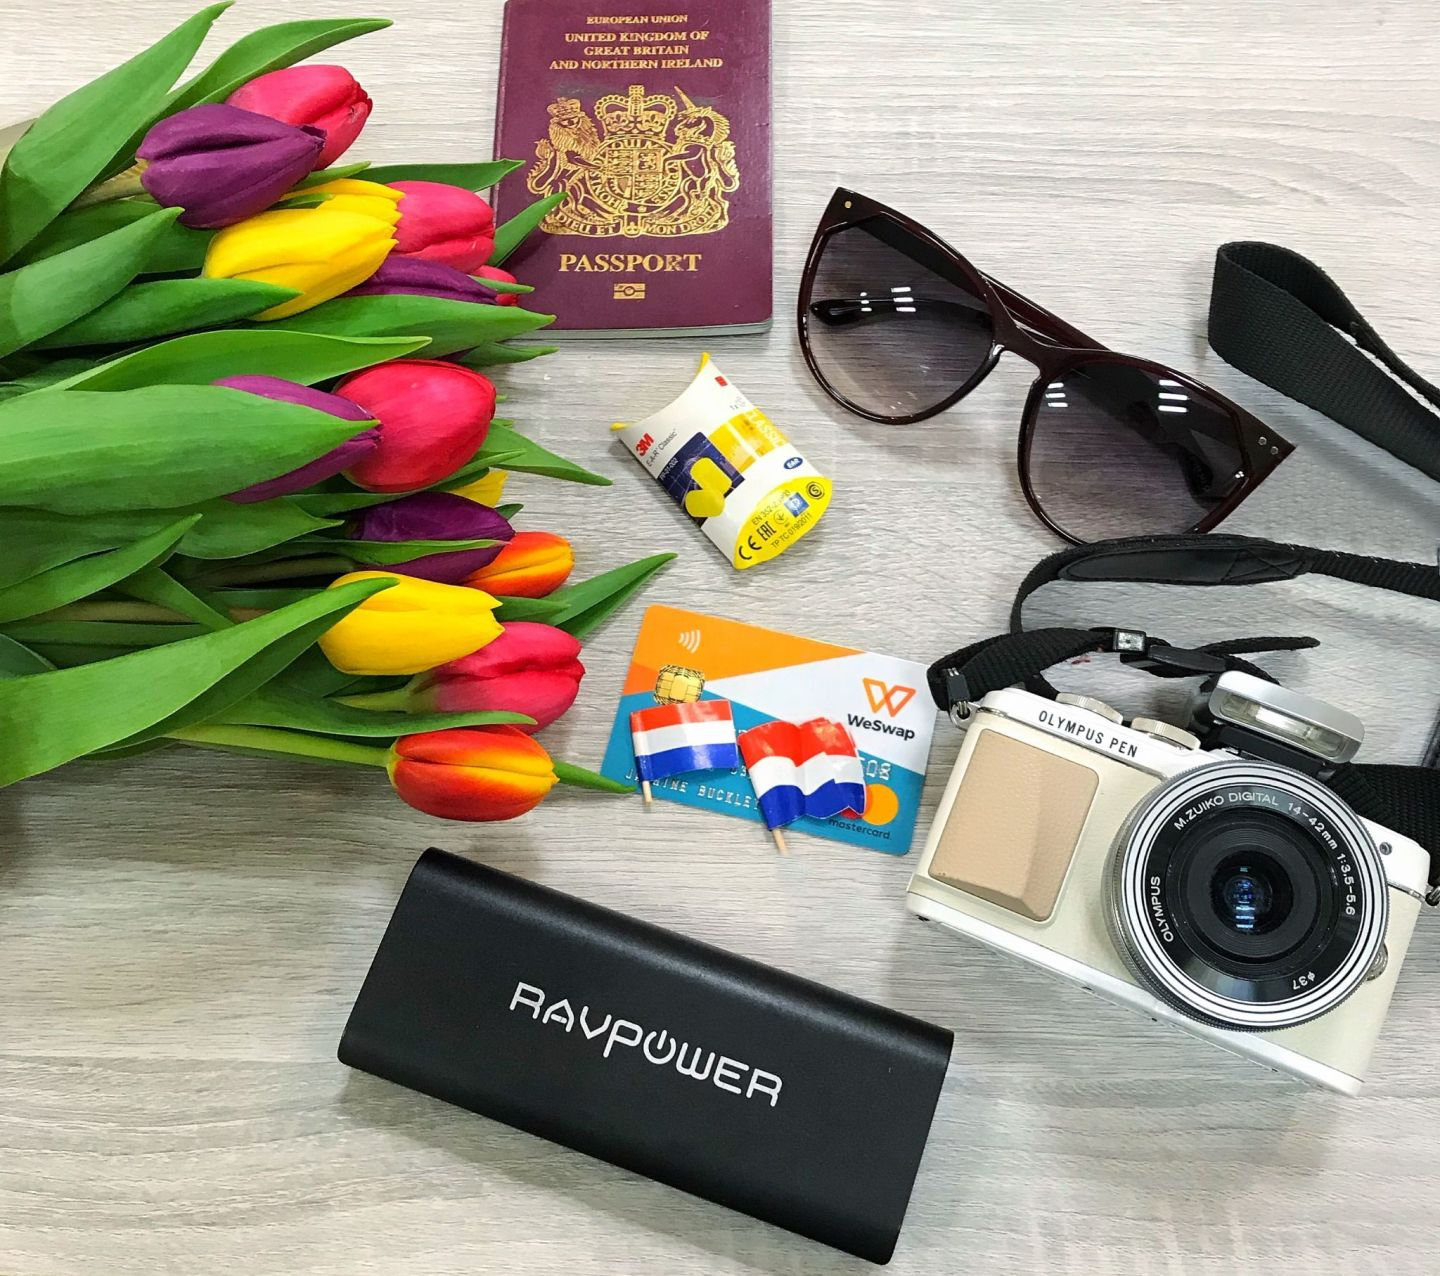 Unpack My Bag of Travel Essentials with WeSwap Currency Card